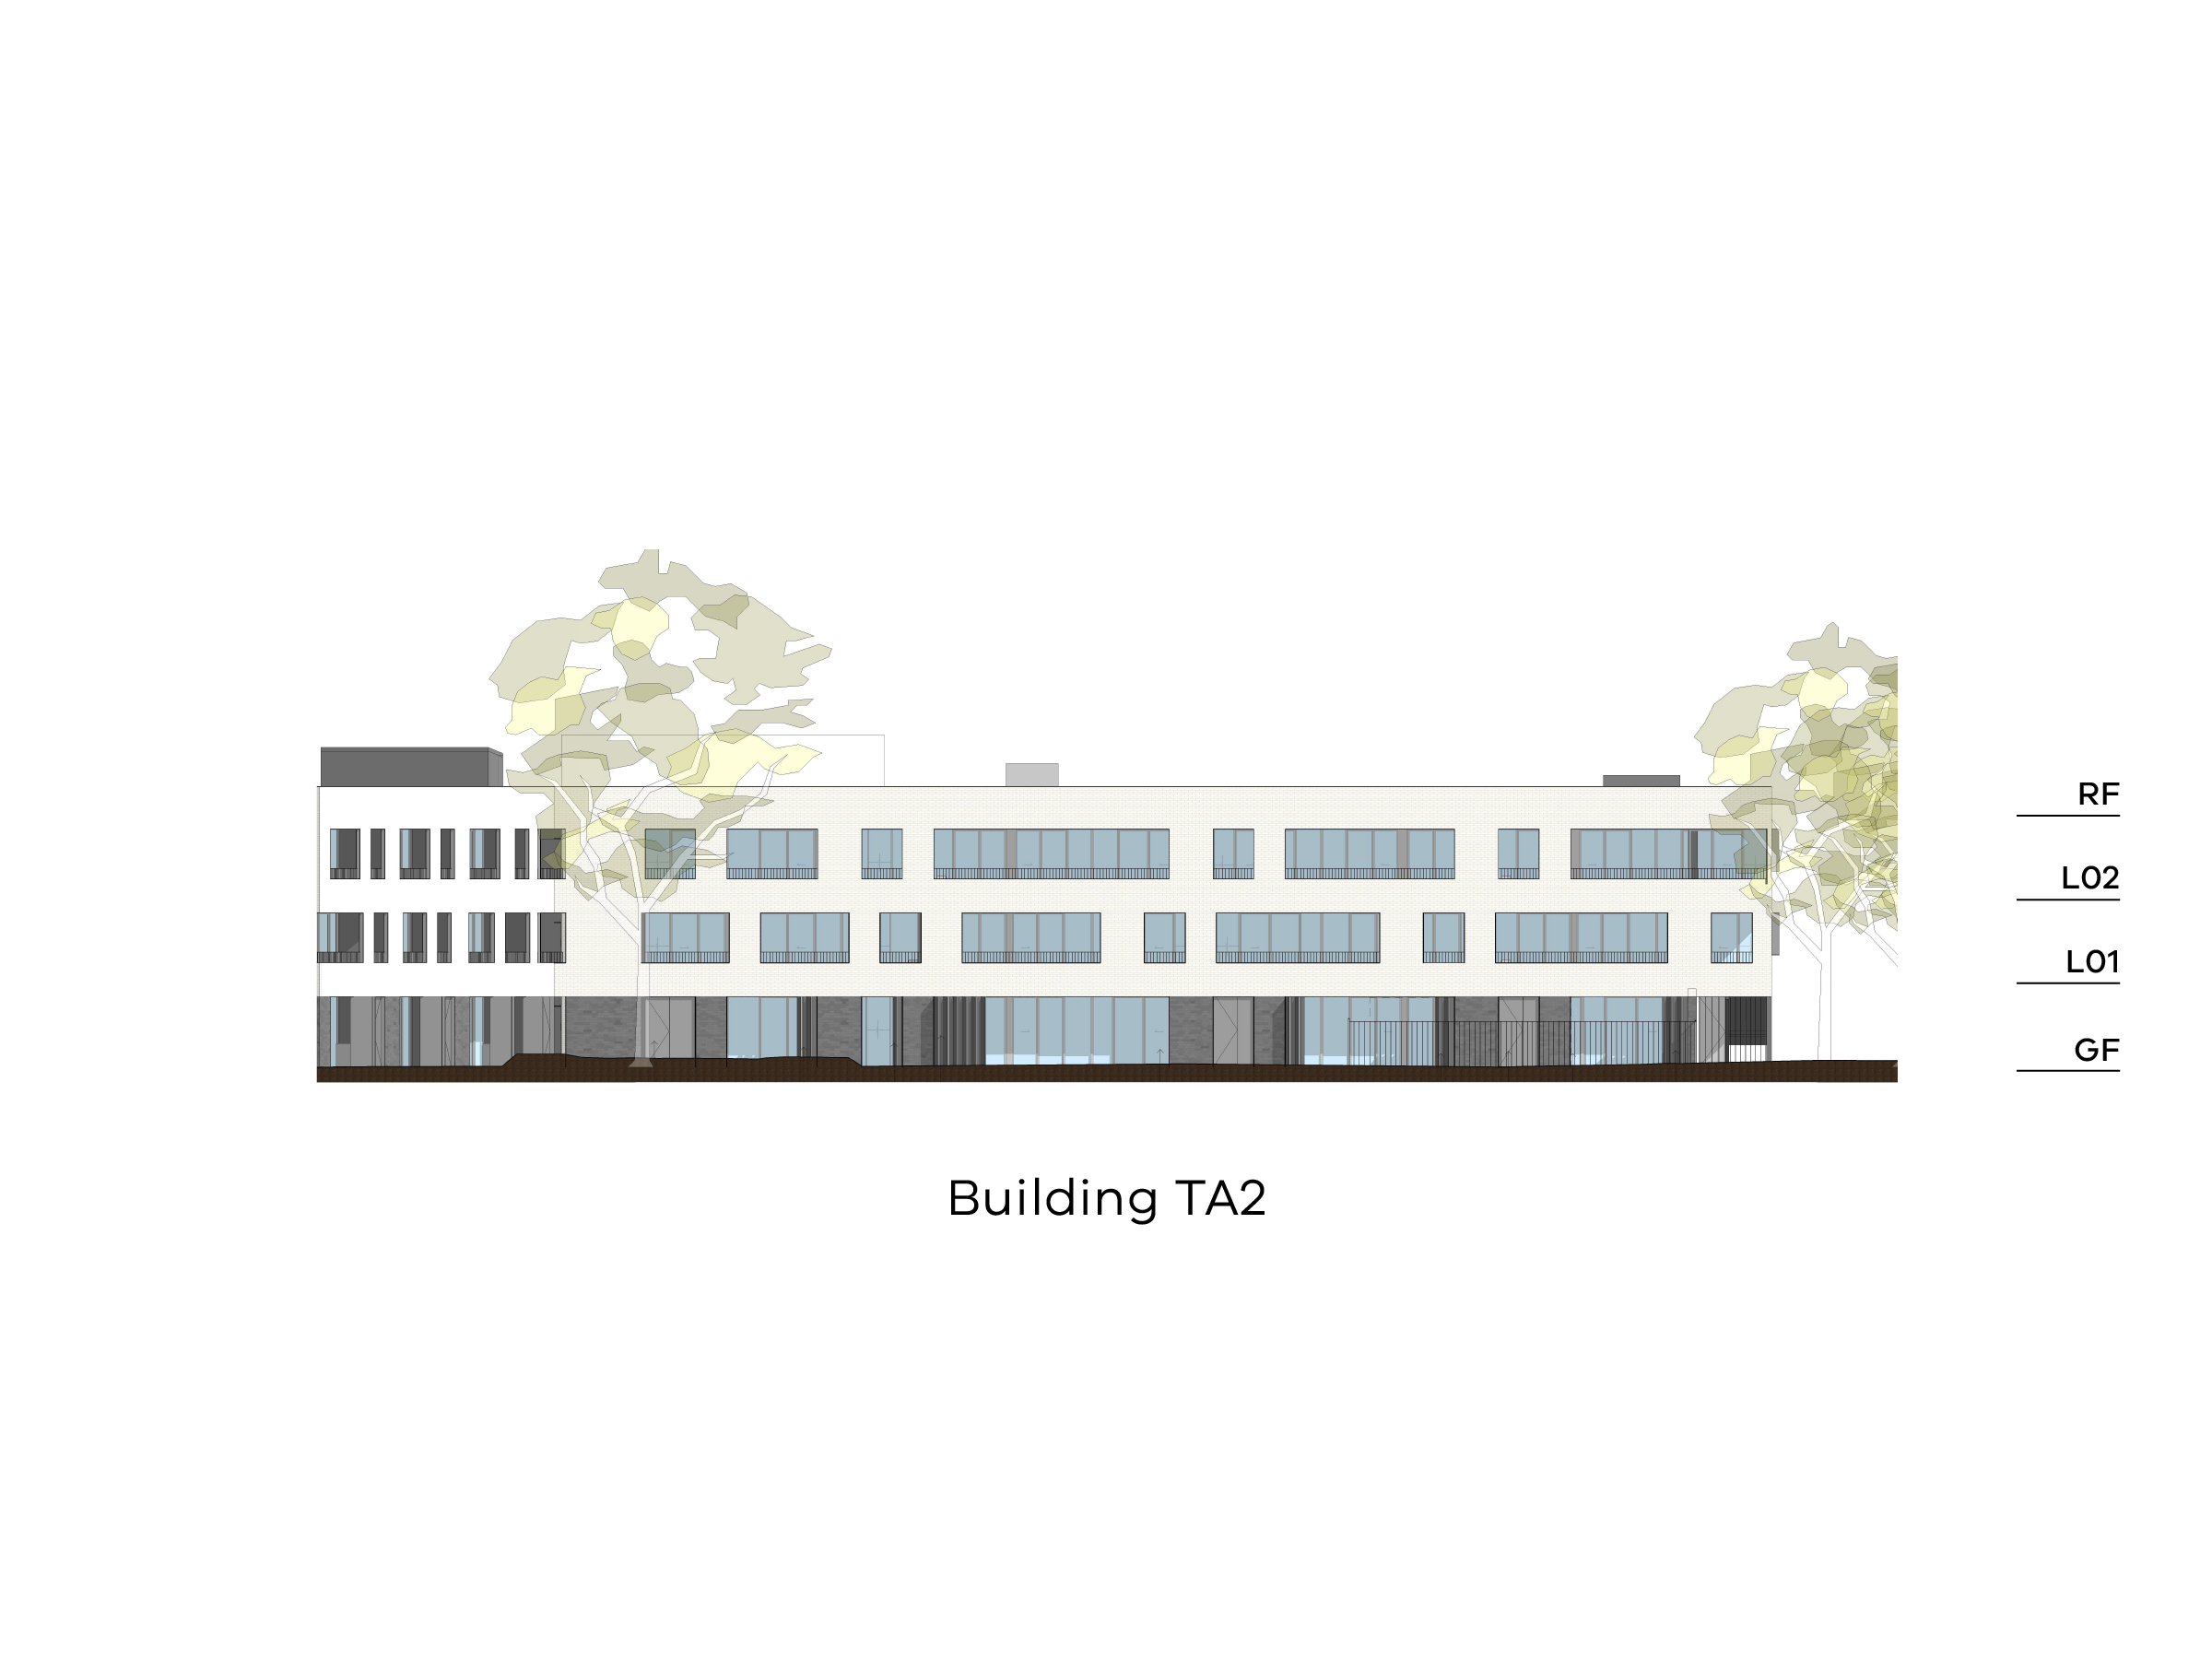 Diagram showing the height of the northern part of building TA2 as seen from the on-site park looking towards Tarakan Street. Building TA2 has a ground floor, level 1-2 and a flat roof.